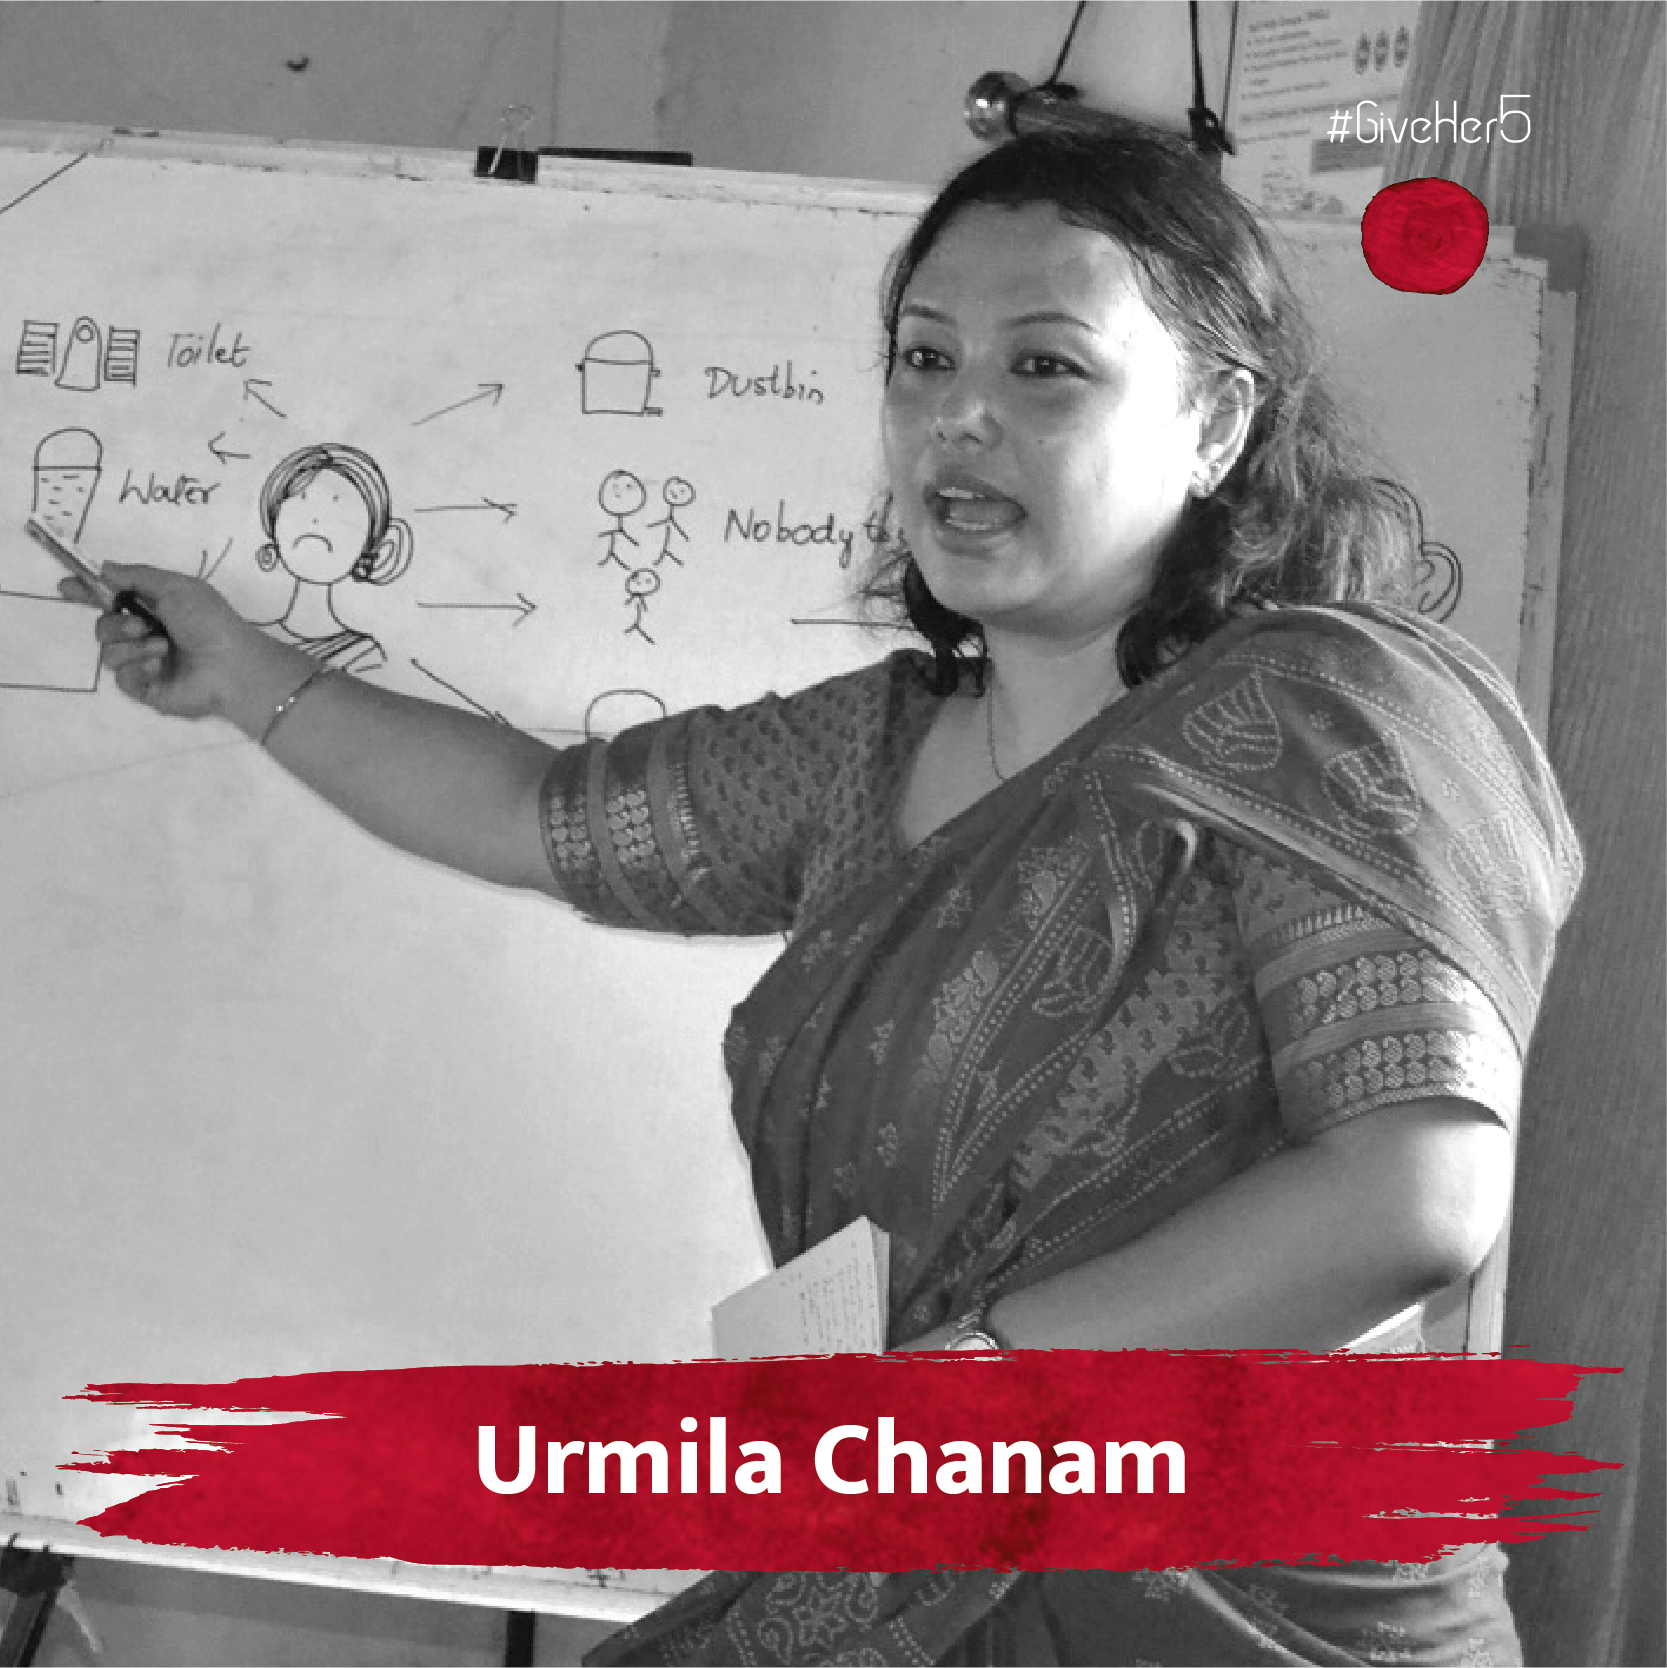 Urmila Chanam GiveHer5